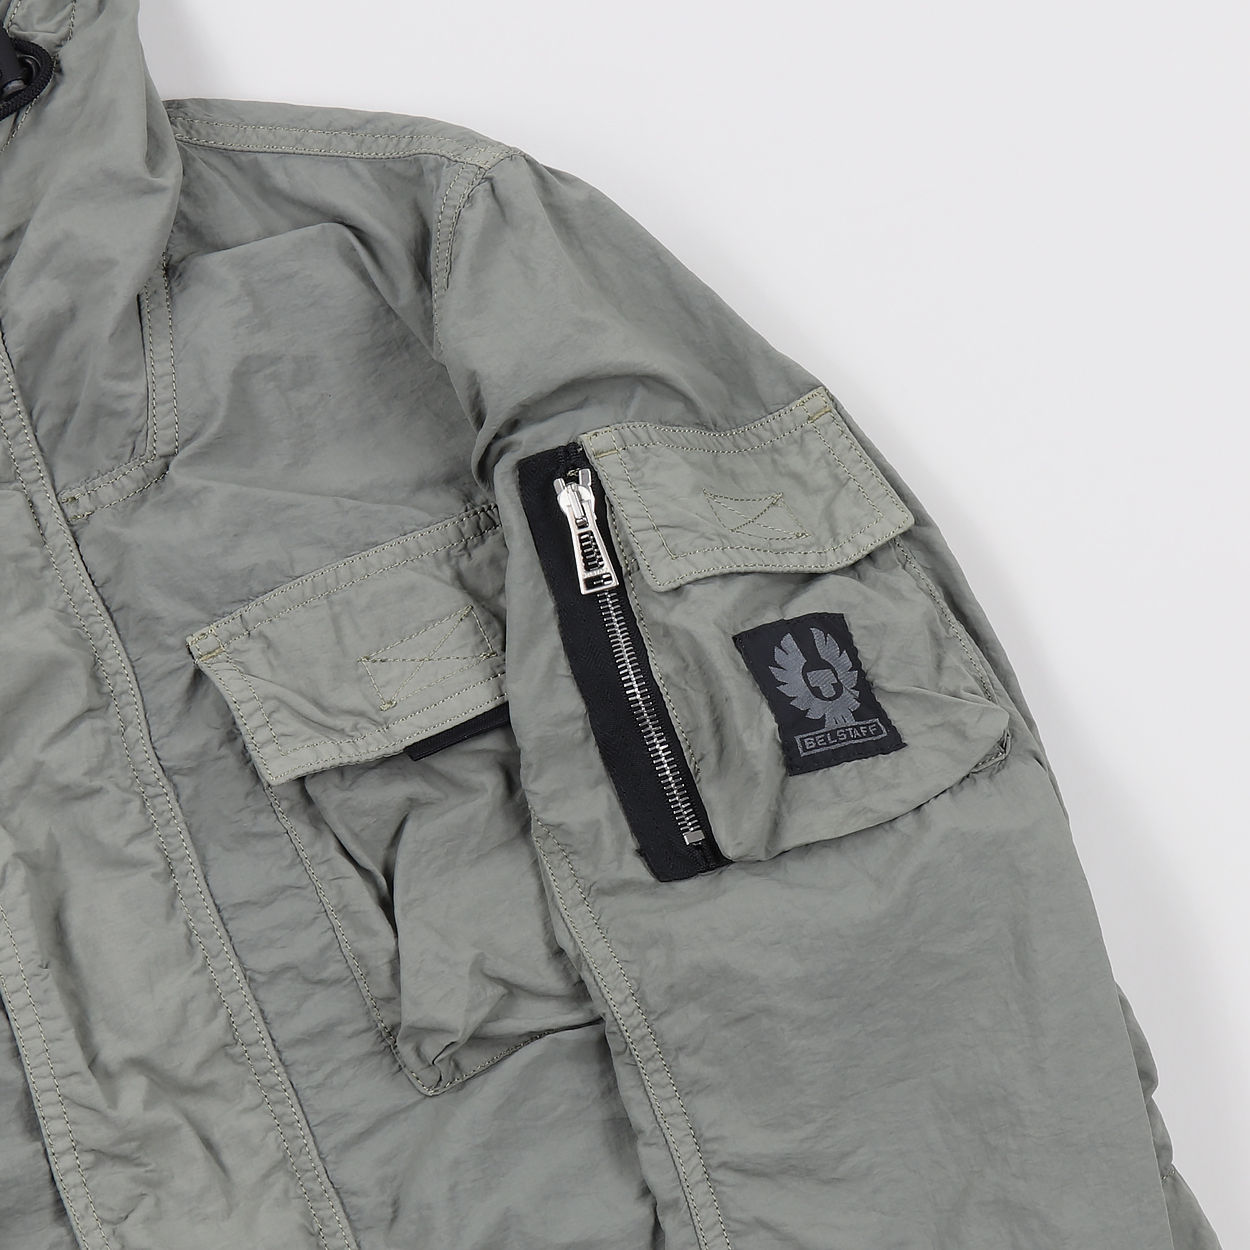 8b08175359 A hooded jacket from the UK's premium Belstaff. A three-in-one, the shell  is made from 100% nylon with five pockets and a two-way zipper, and the  detachable ...